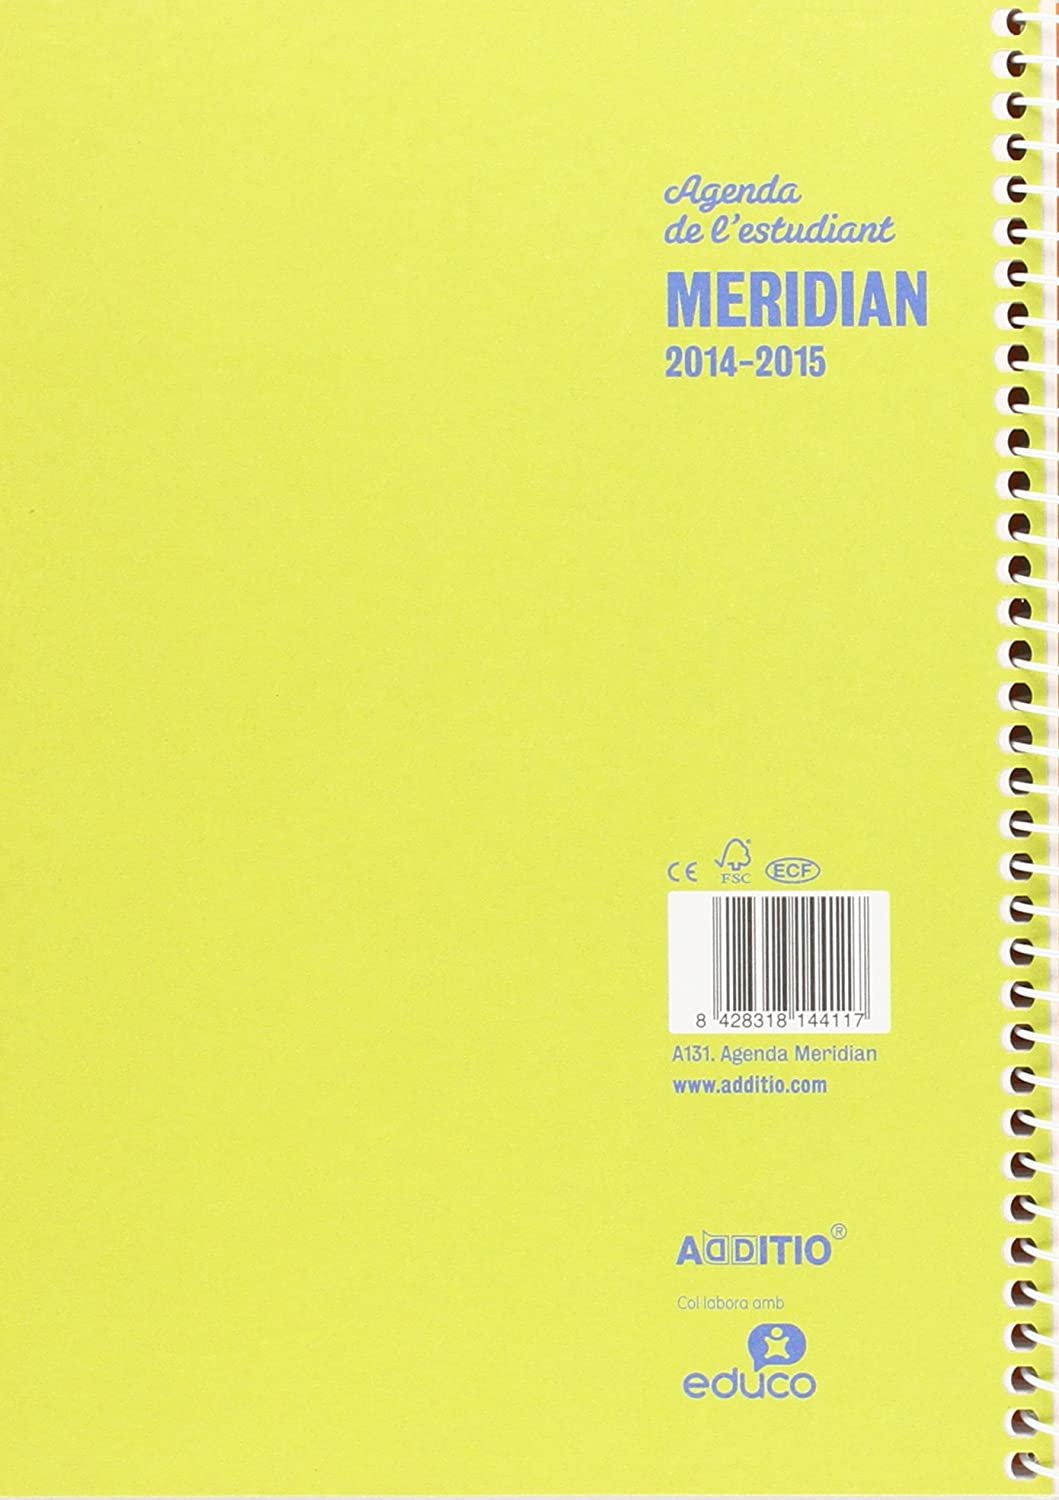 Amazon.com : ingraf A131 - Agenda Meridian A5 SV Catalan ...